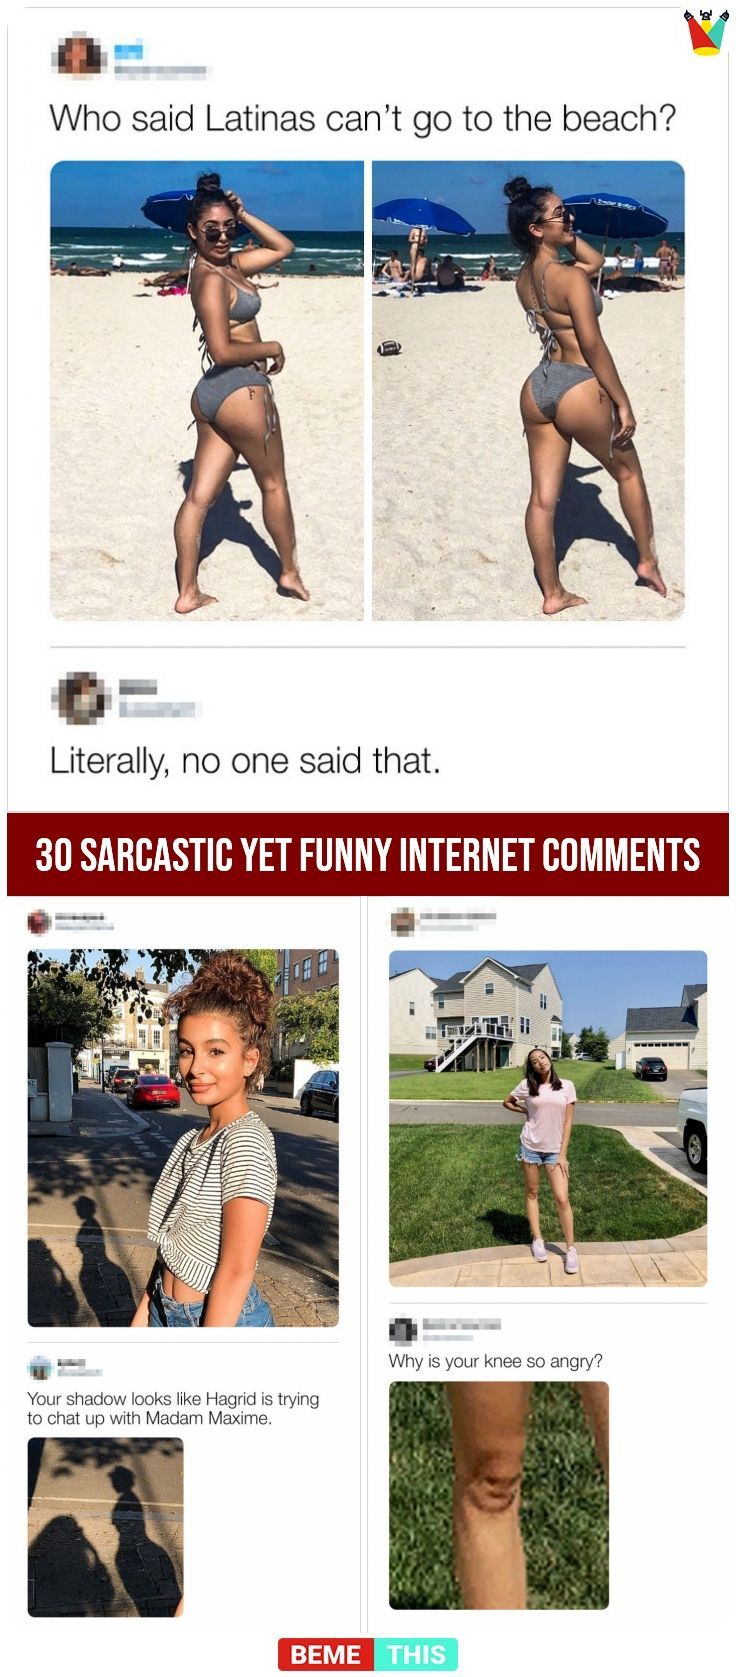 Funniest Pictures On The Internet : funniest, pictures, internet, Sarcastic, Funniest, Internet, Comments, #socialmedia, #internet, #sarcasticcomments, #funnycomments, #humor, #inter…, Funny,, Sarcastic,, Funny